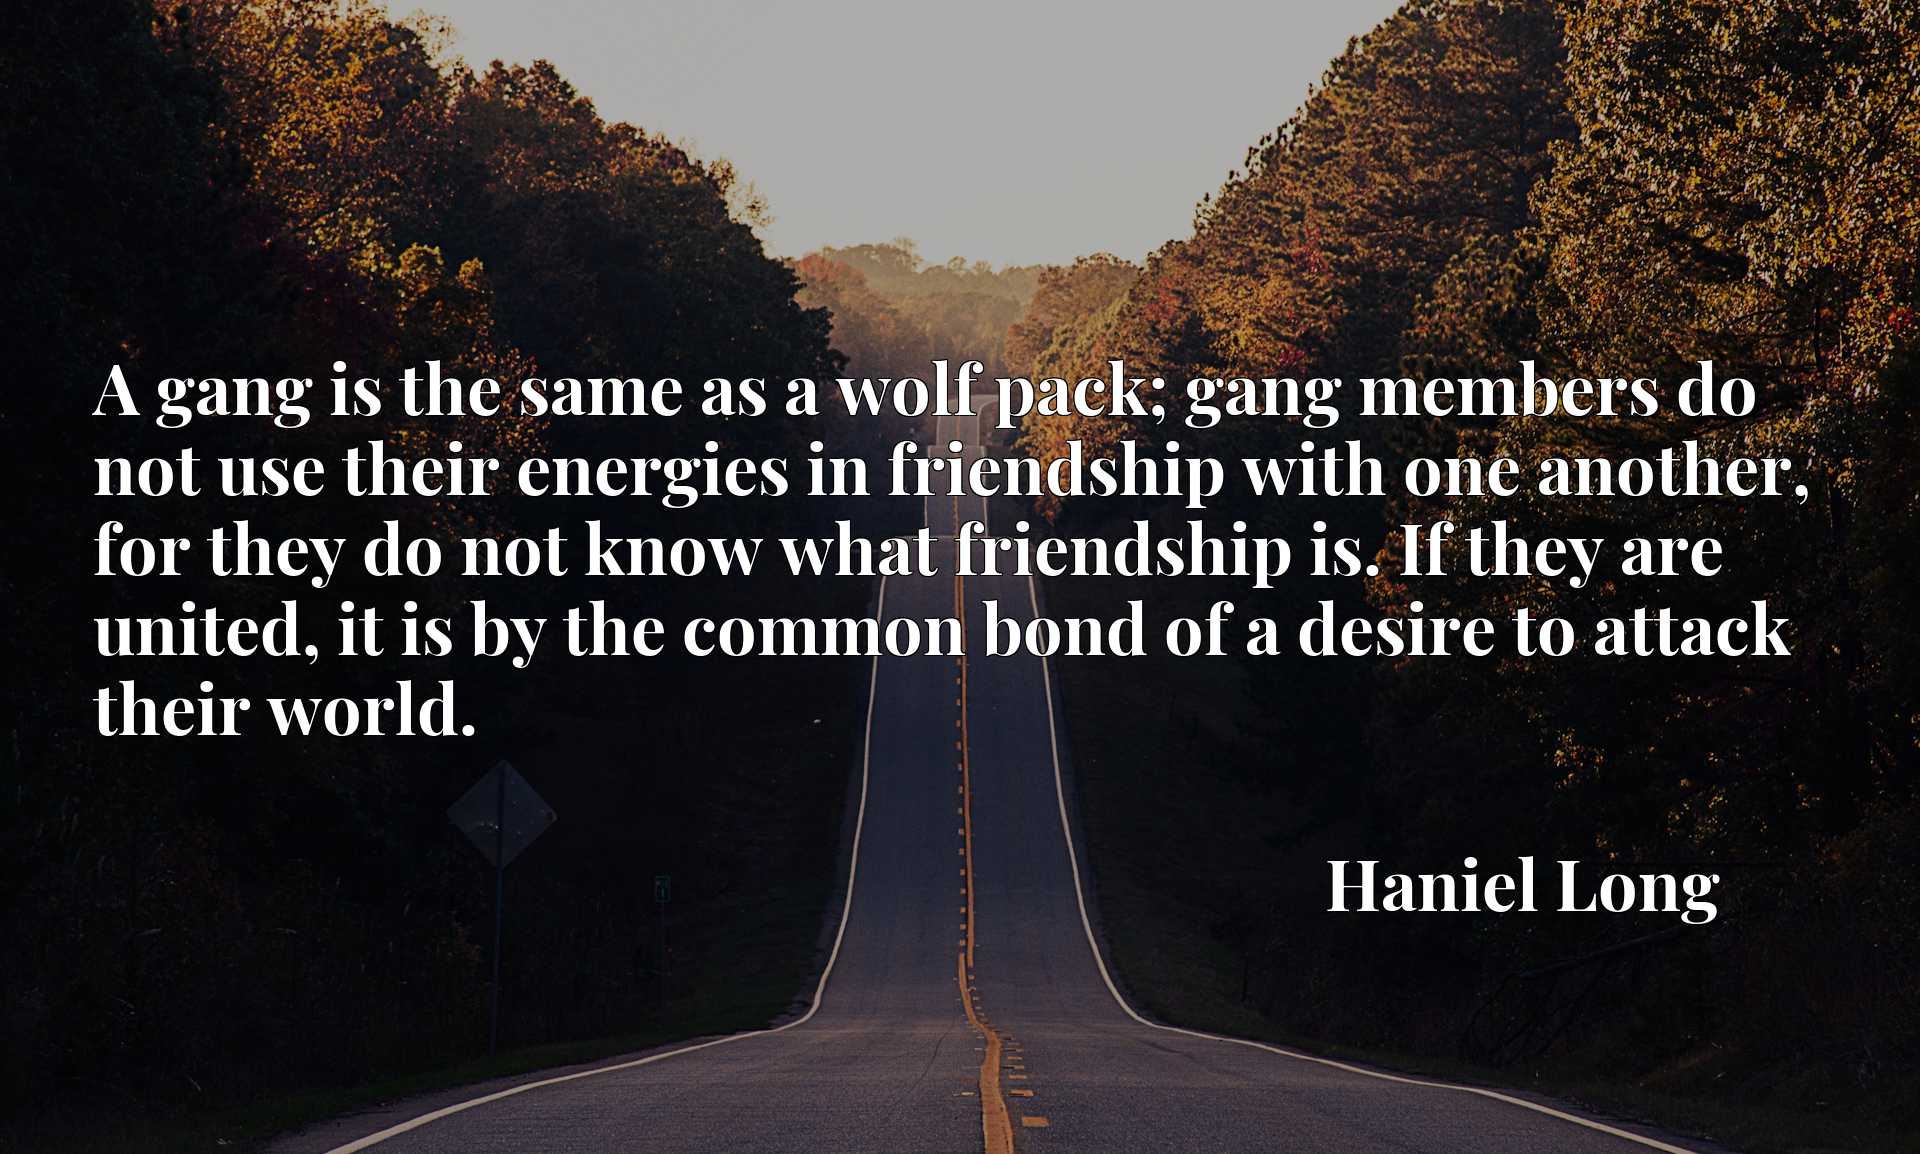 A gang is the same as a wolf pack; gang members do not use their energies in friendship with one another, for they do not know what friendship is. If they are united, it is by the common bond of a desire to attack their world.